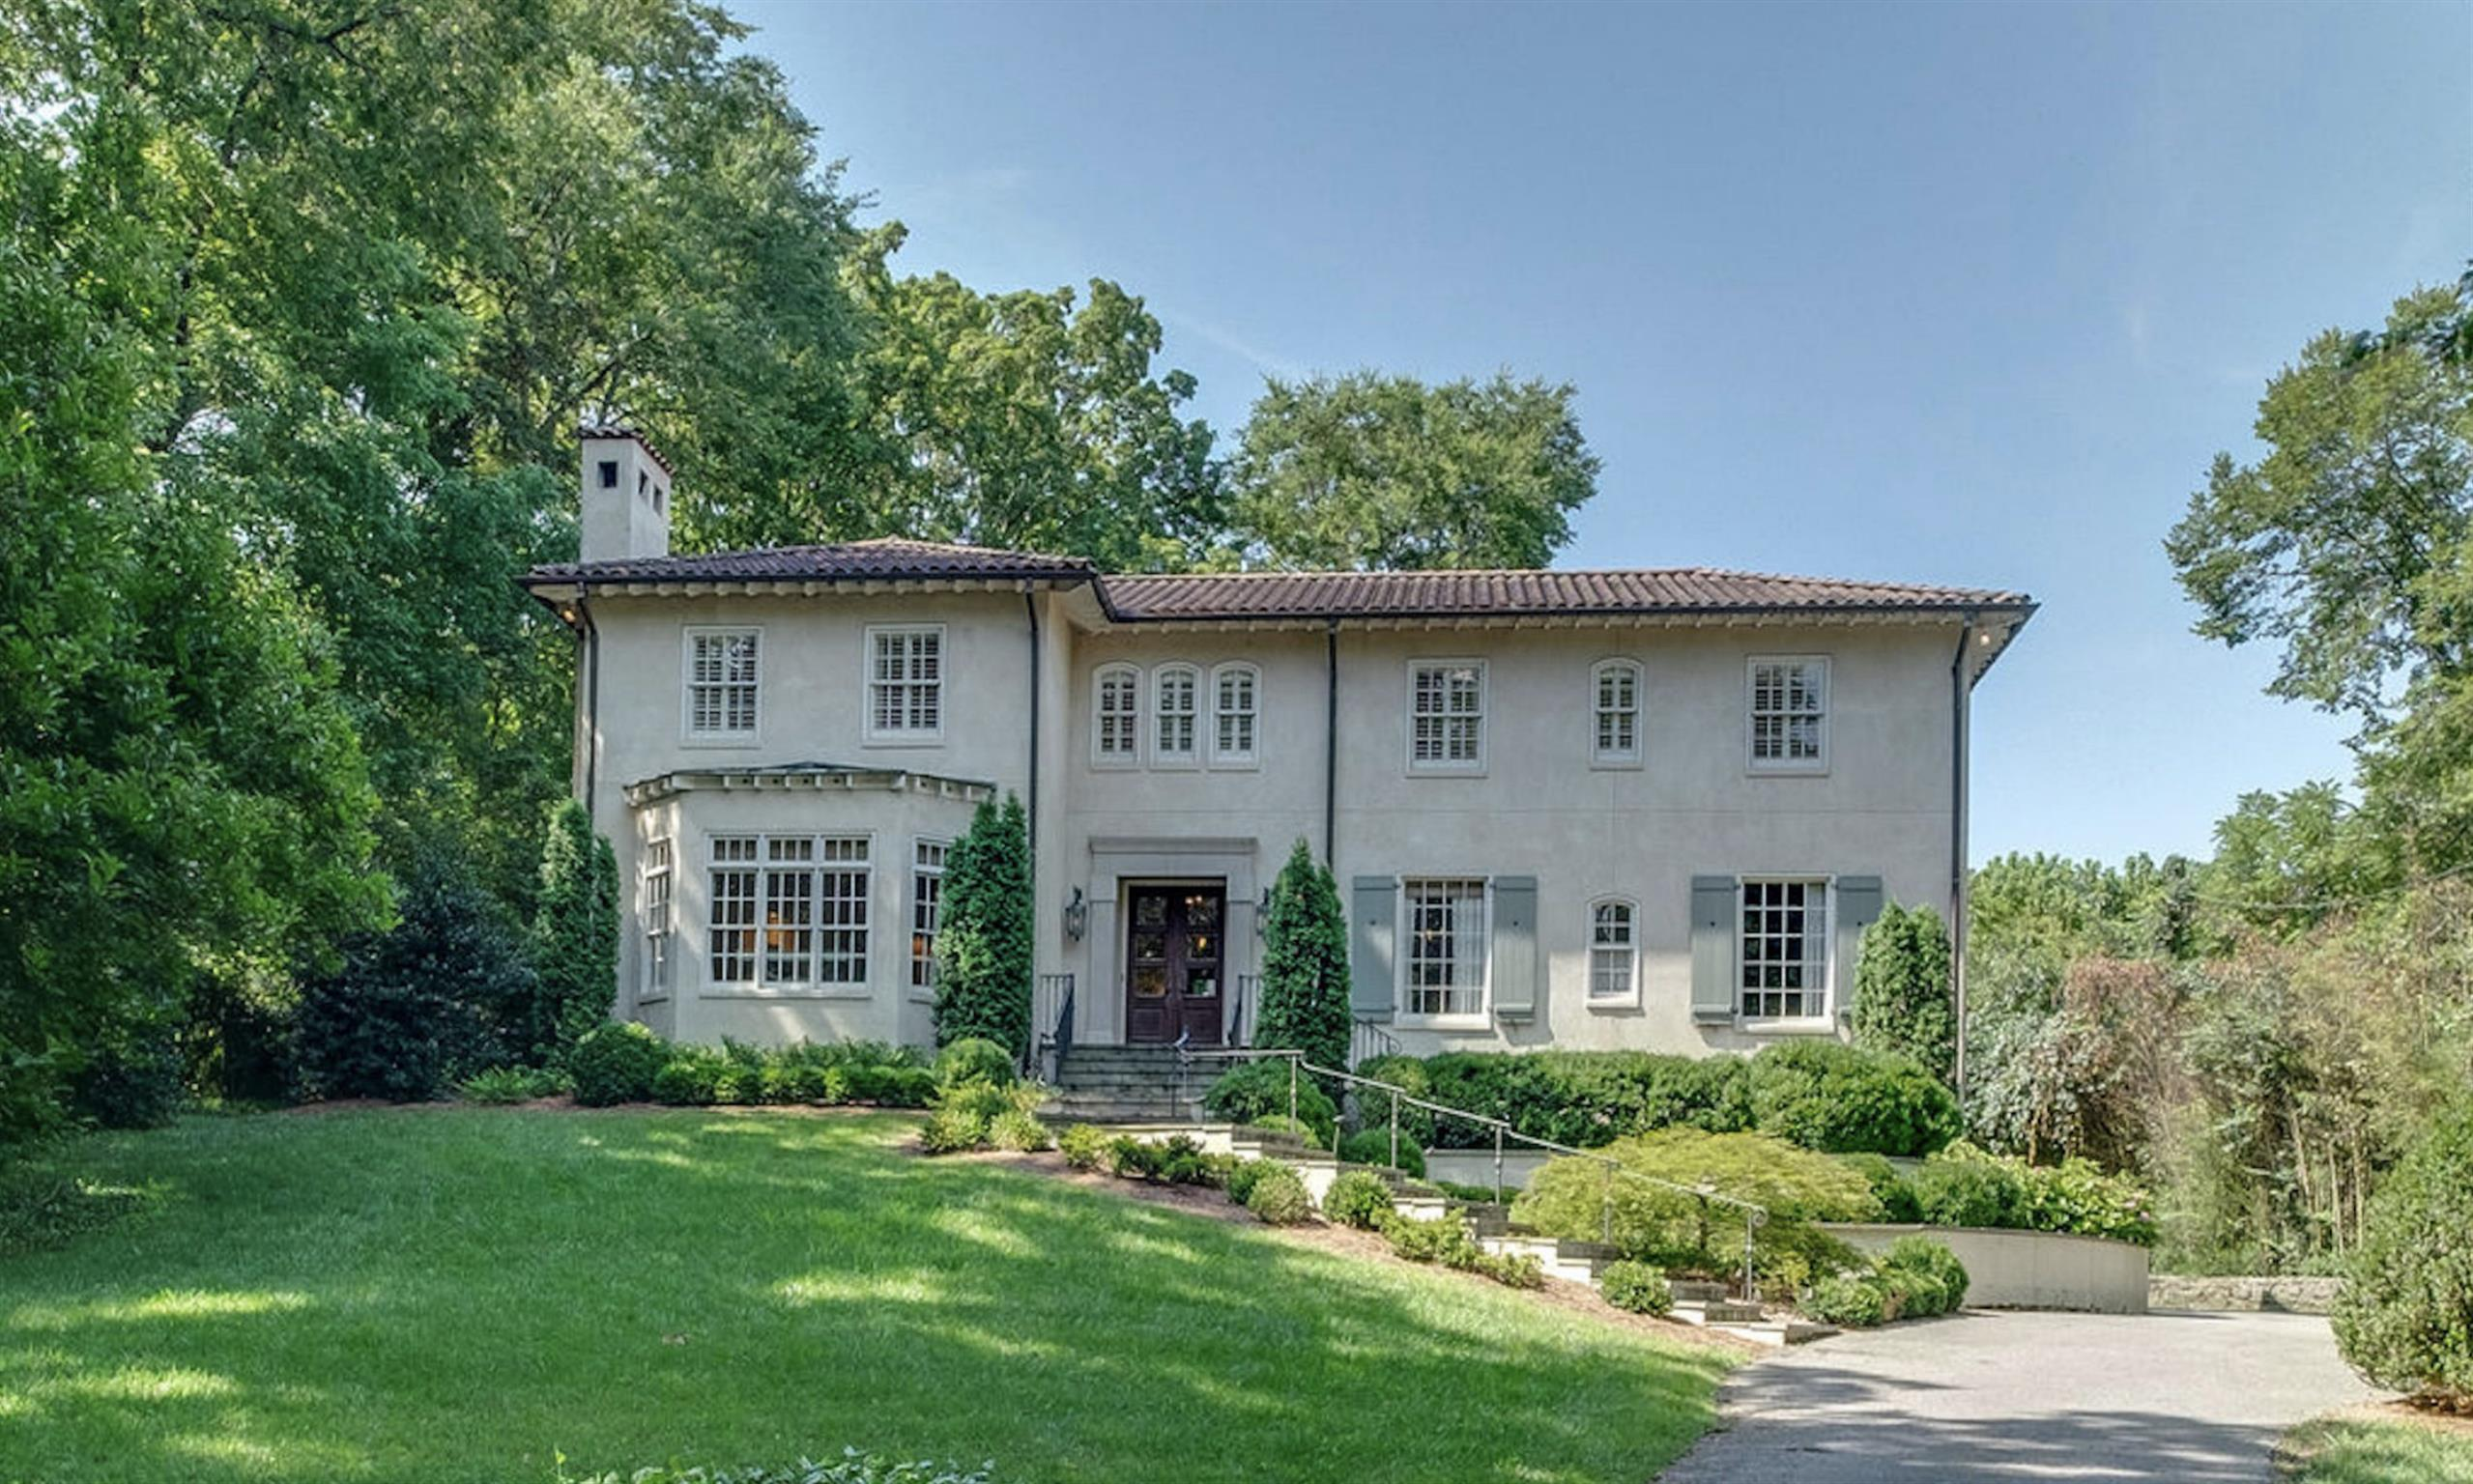 117 Clarendon Ave, Nashville, TN 37205 - Nashville, TN real estate listing